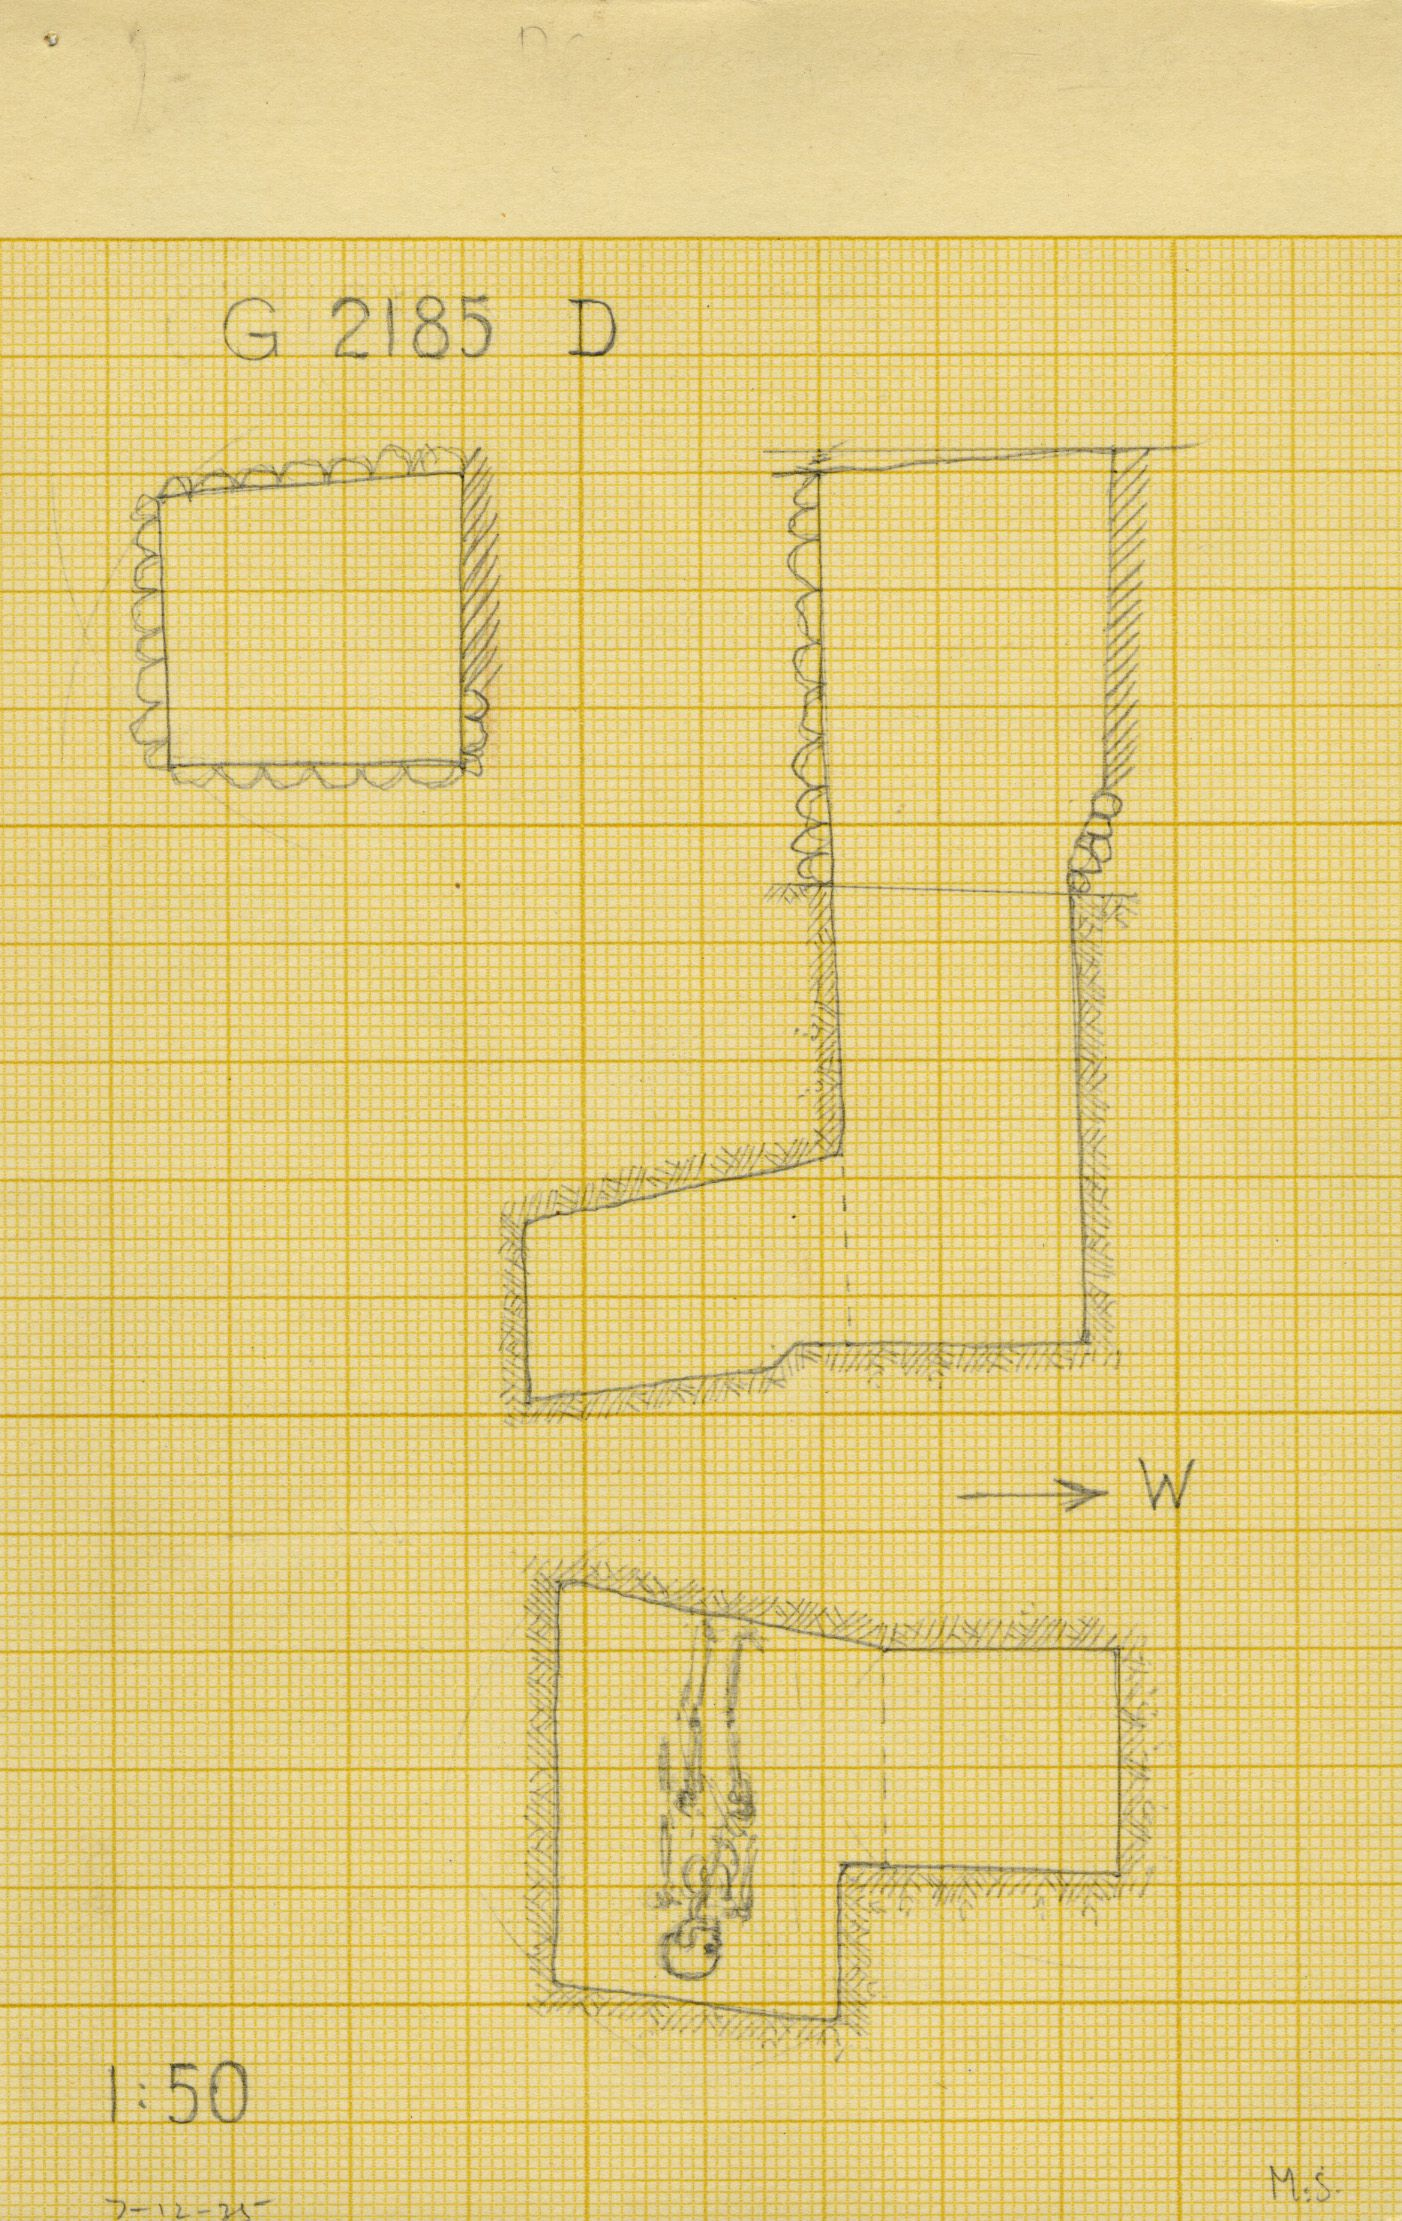 Maps and plans: G 2185, Shaft D